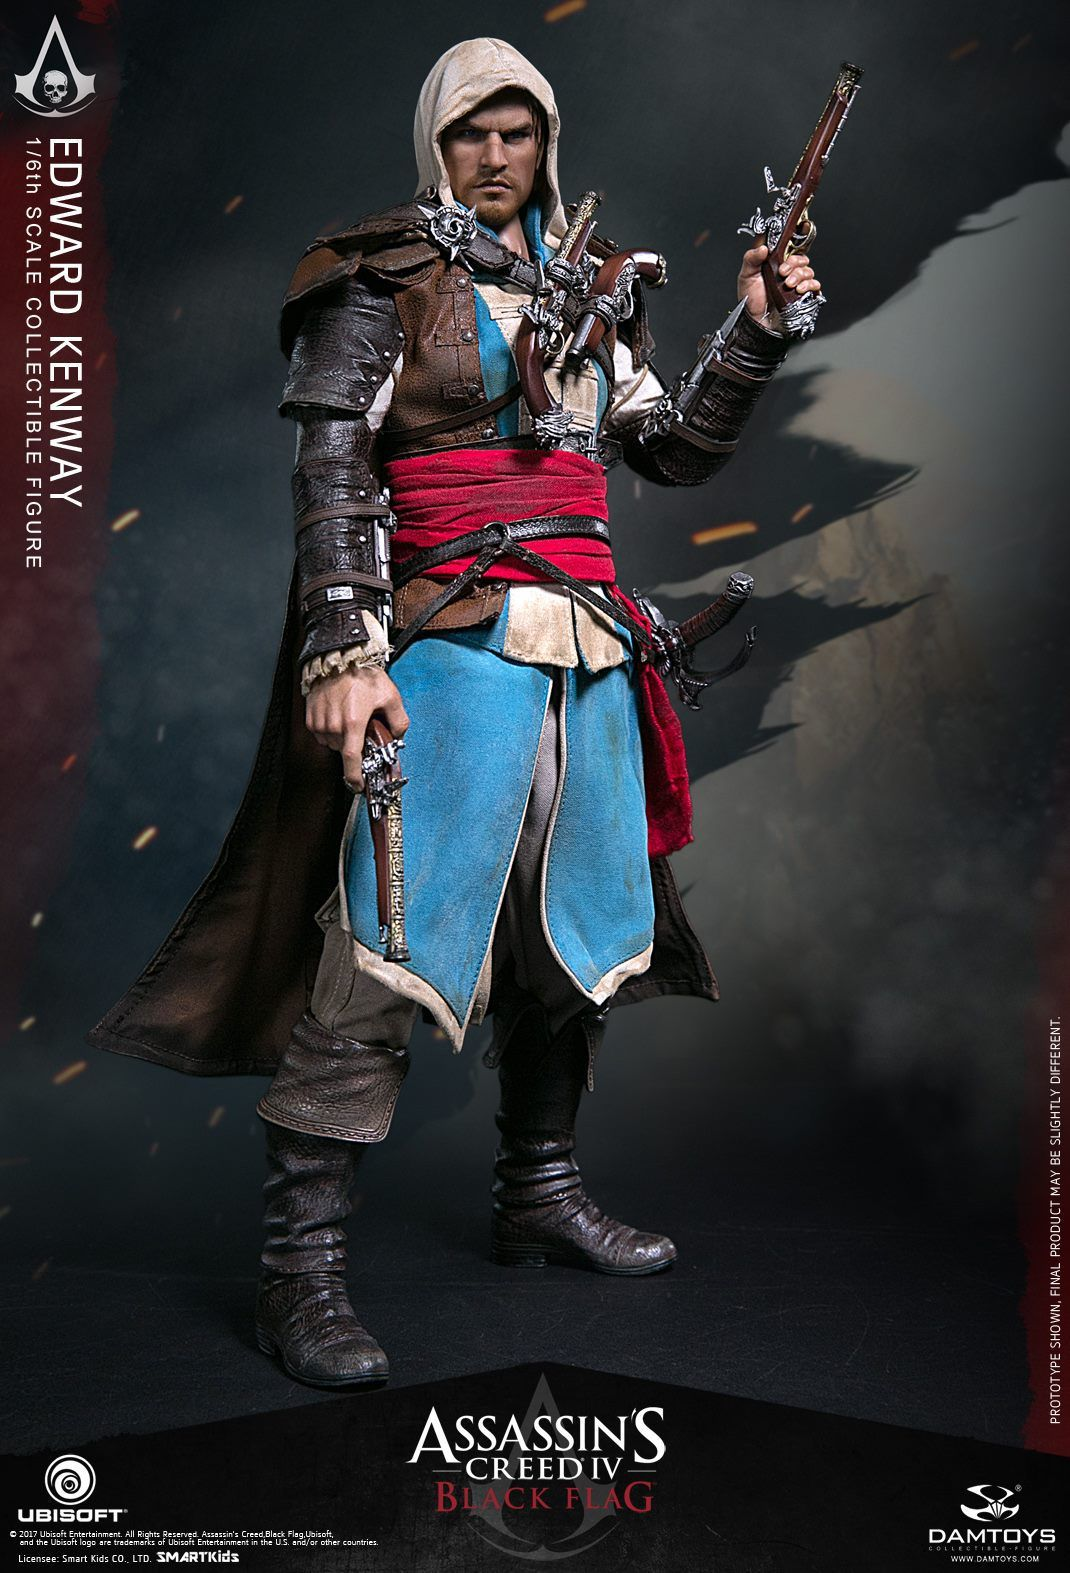 Damtoys Ubisoft Assassin S Creed Iv Blackflag Edward Kenway 1 6